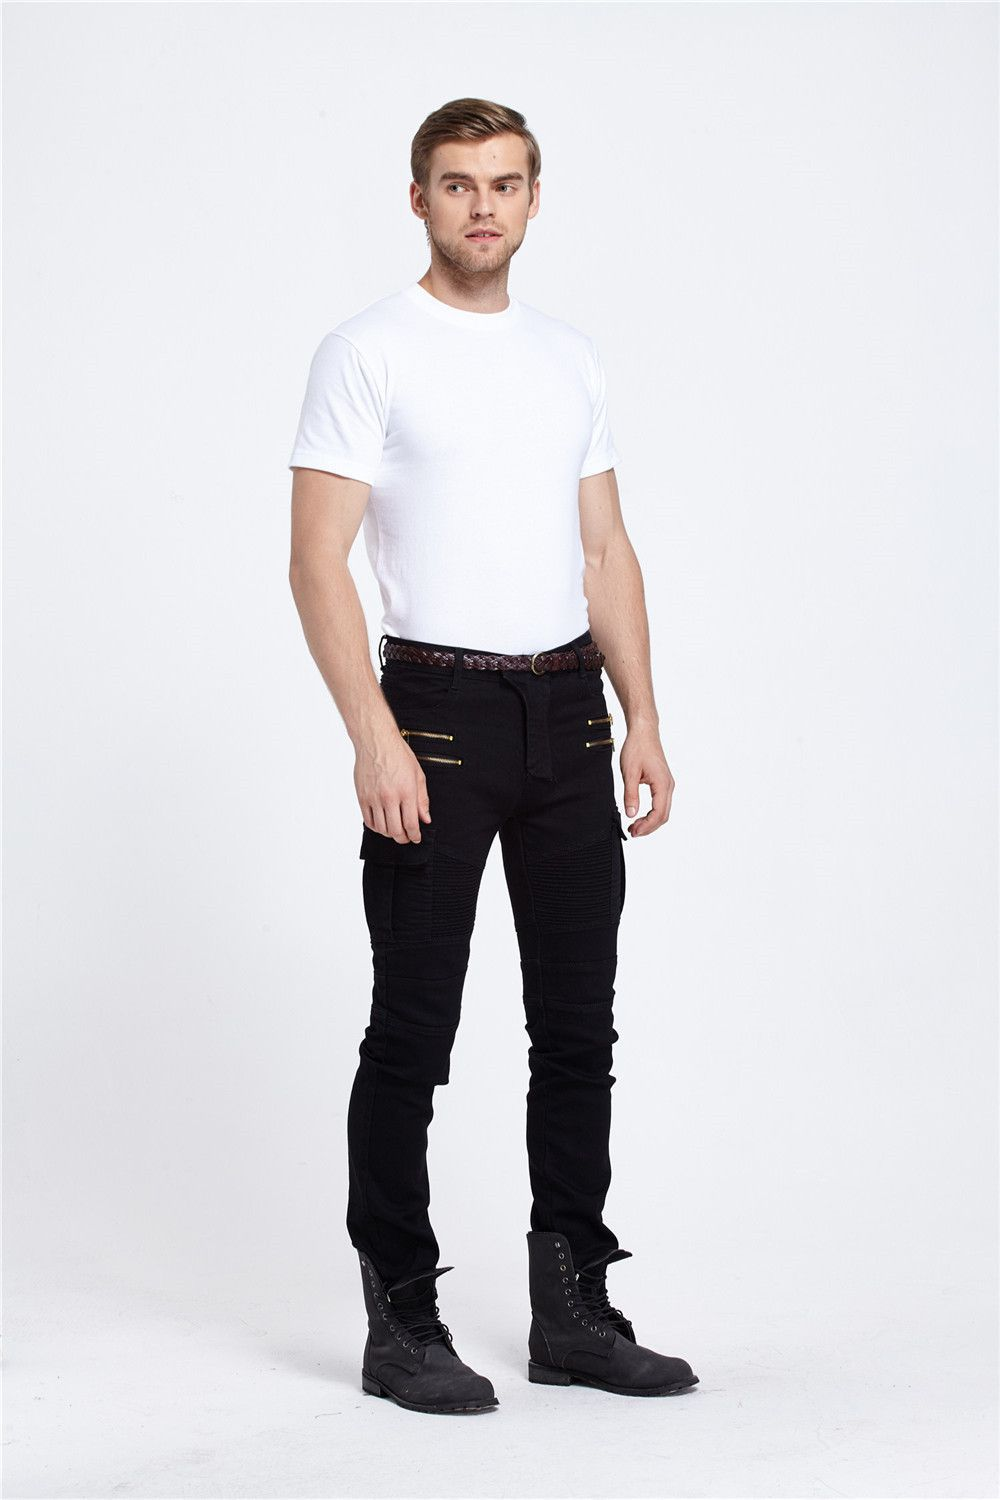 Hot Selling American JEANS Trend Pleated Elasticity Skinny Jeans Men's